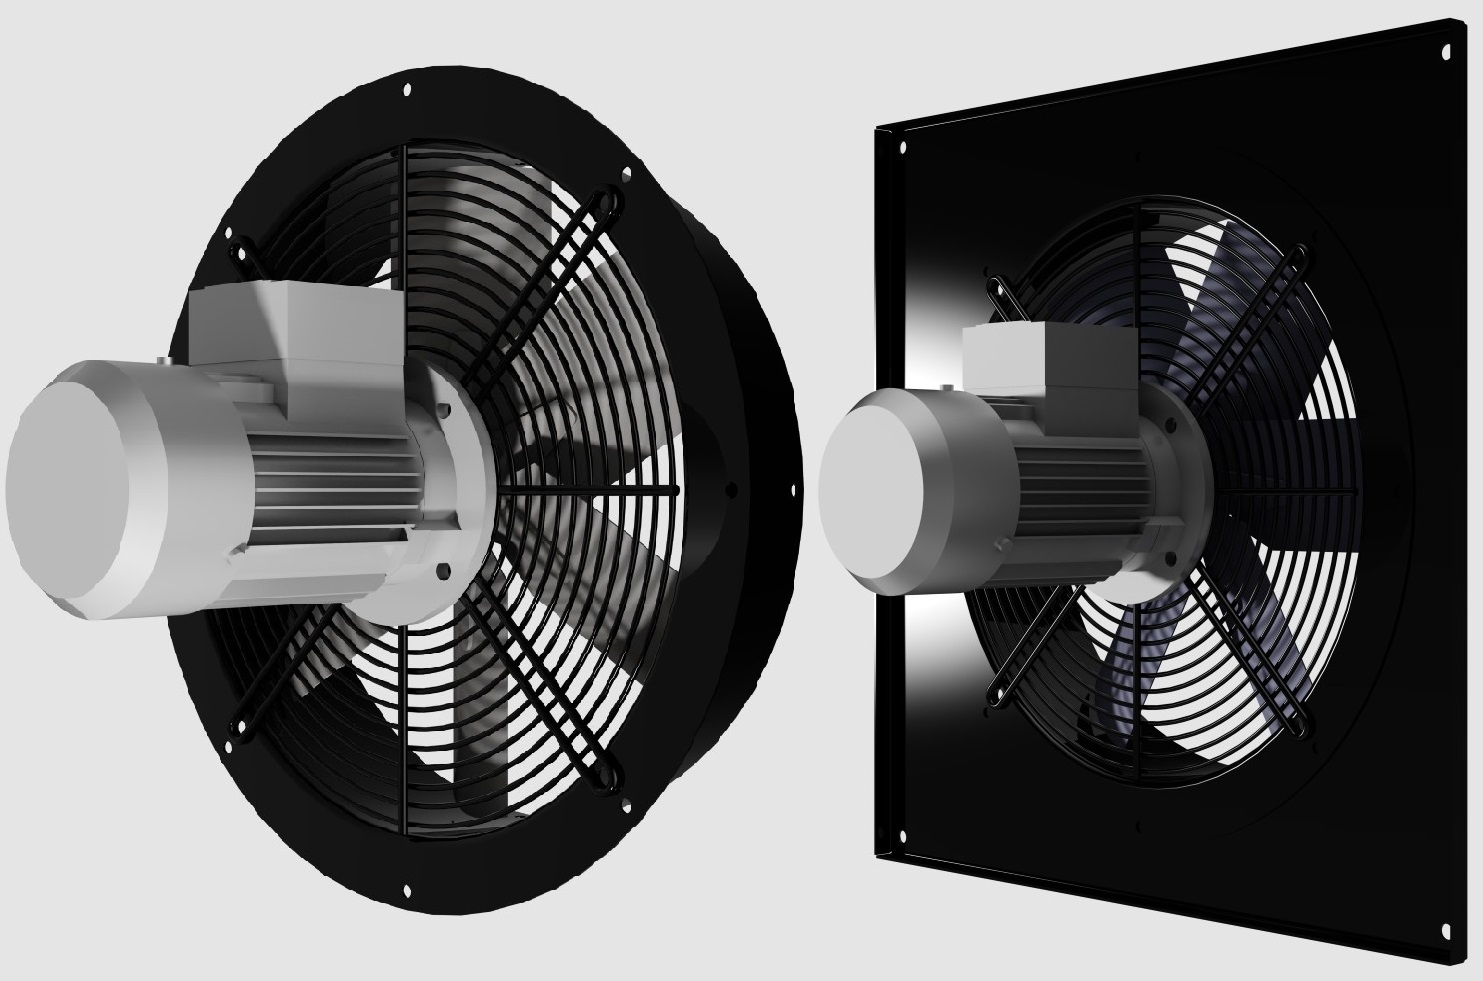 Industrial axial fans - Moro S r l